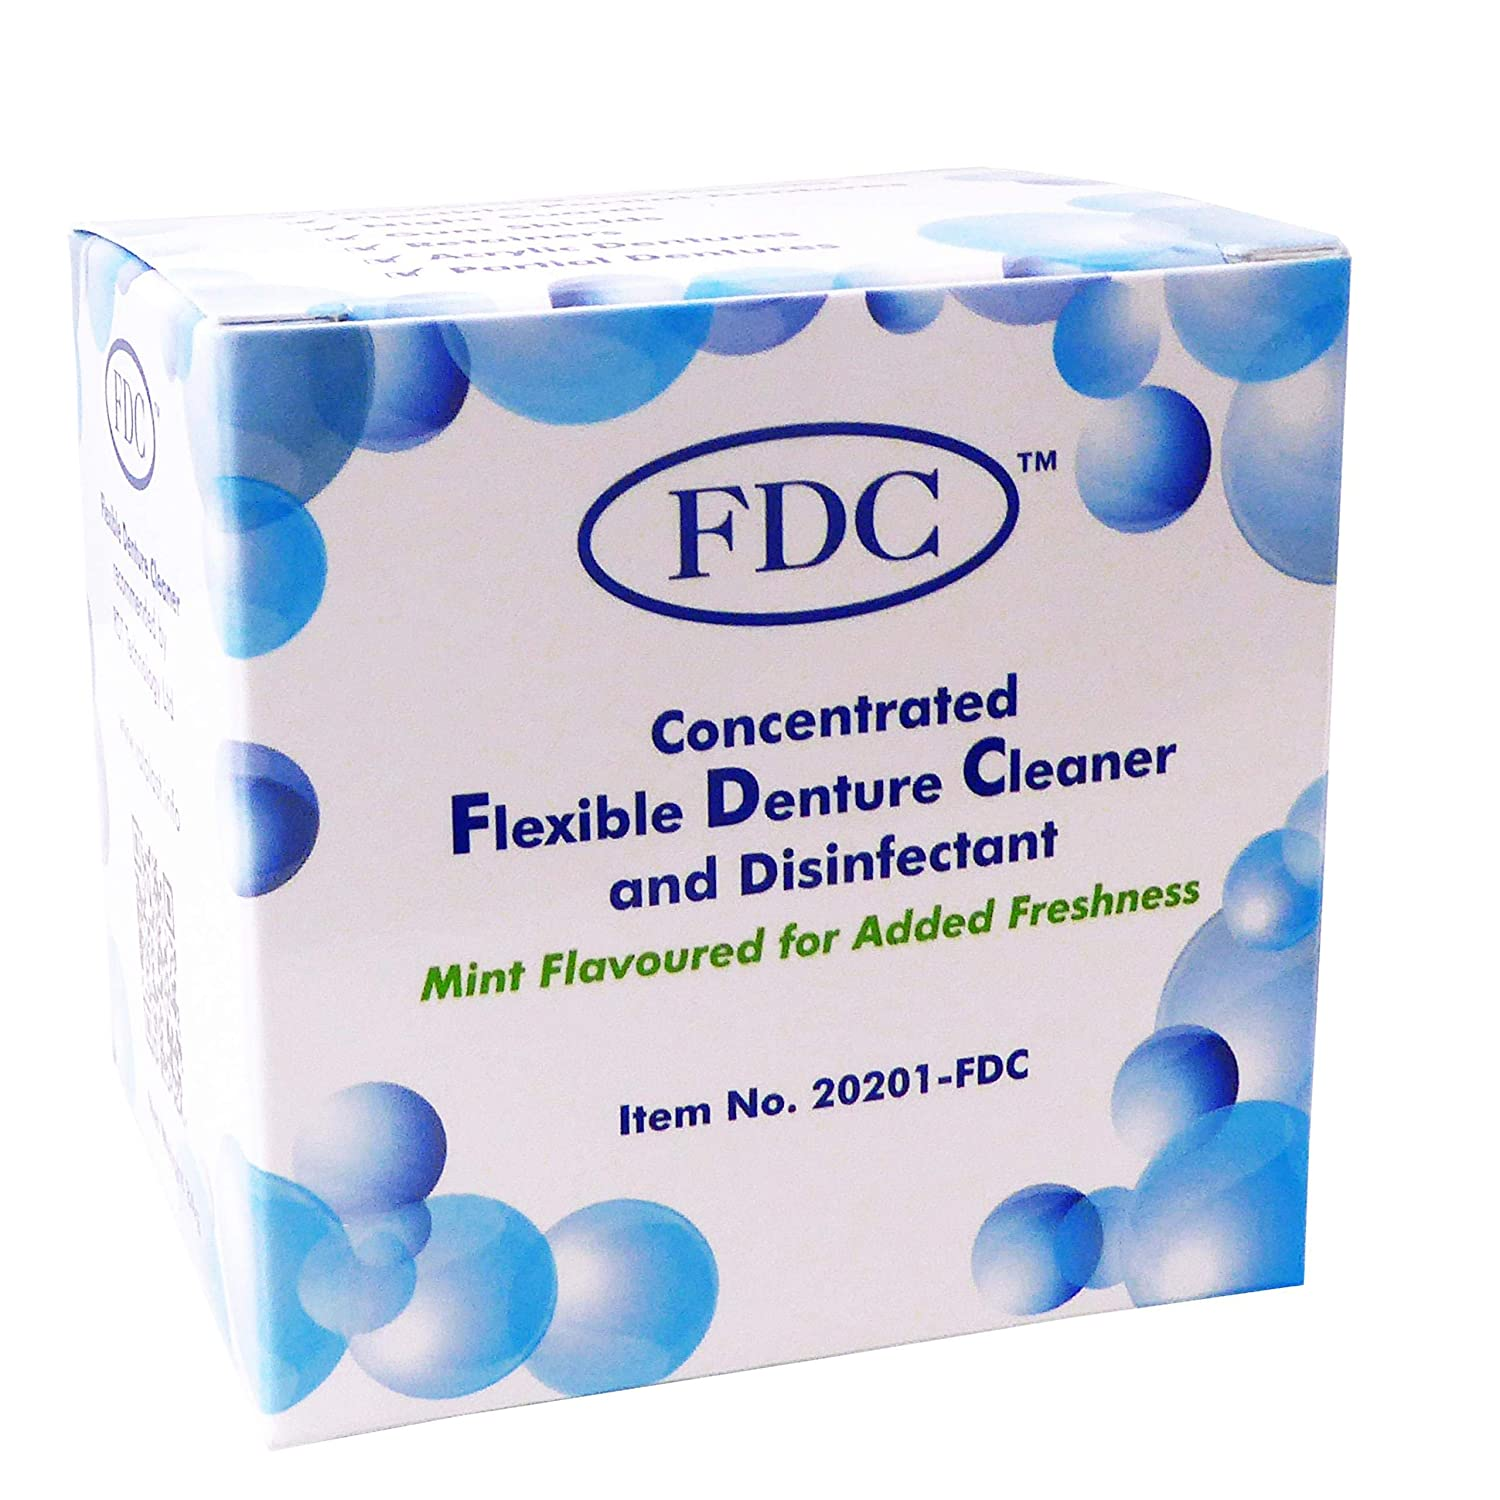 Flexible Denture Cleaner FDC ~ 3 Months Supply ~ Valplast & other Dental Appliances (1 Box (3 Months Supply)) by FDC Dental Aesthetics UK